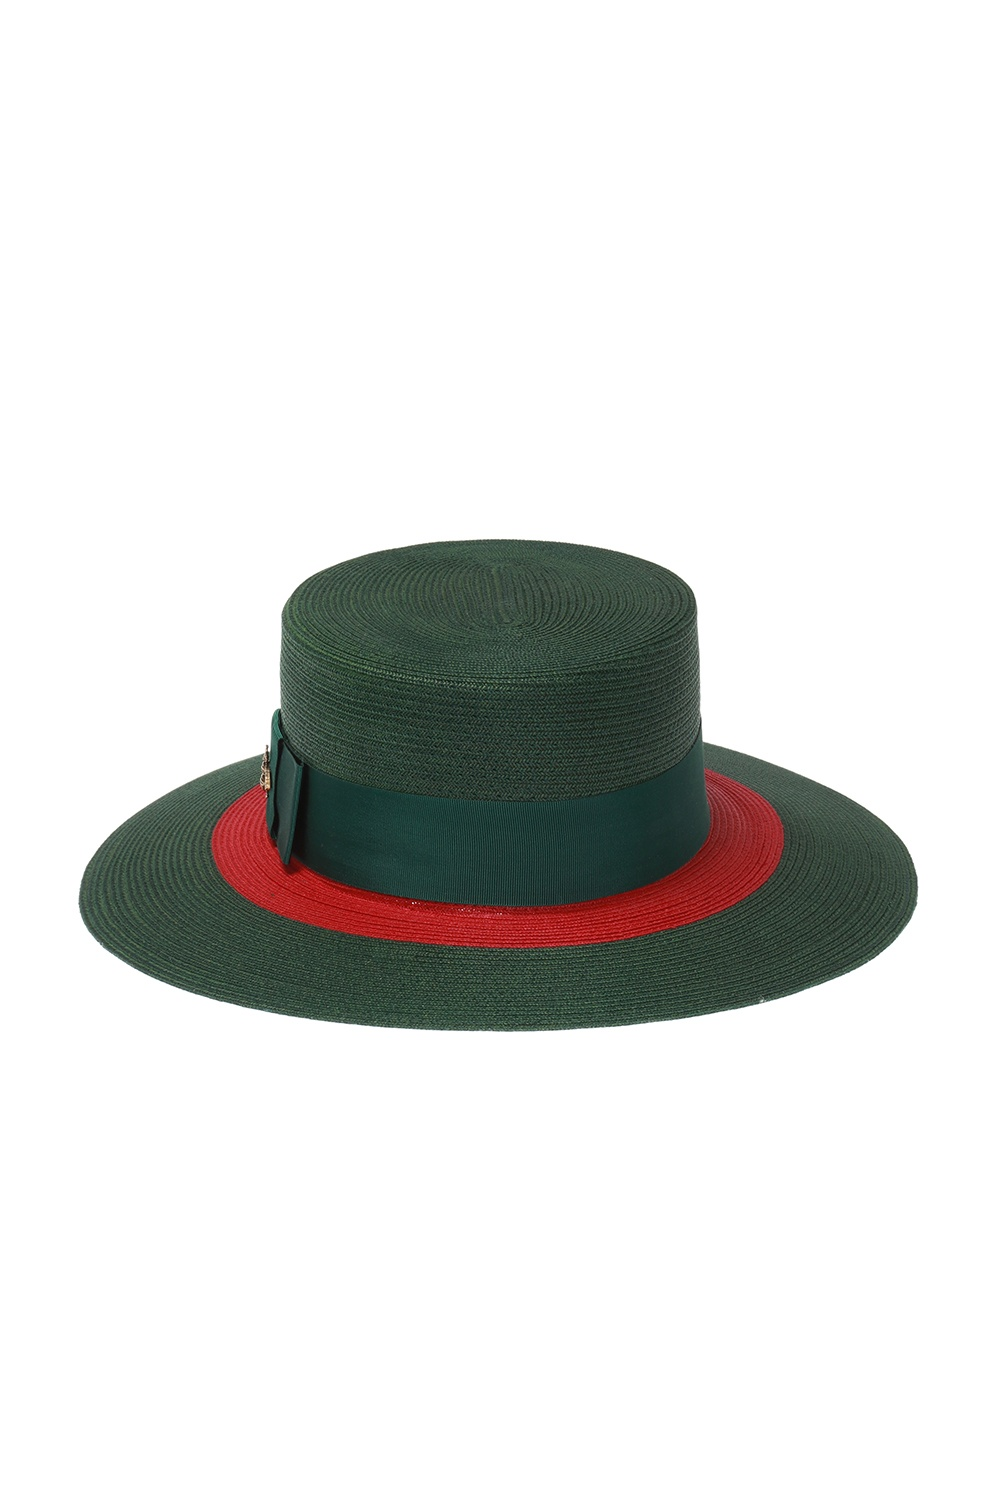 Gucci Hat with grosgrain band